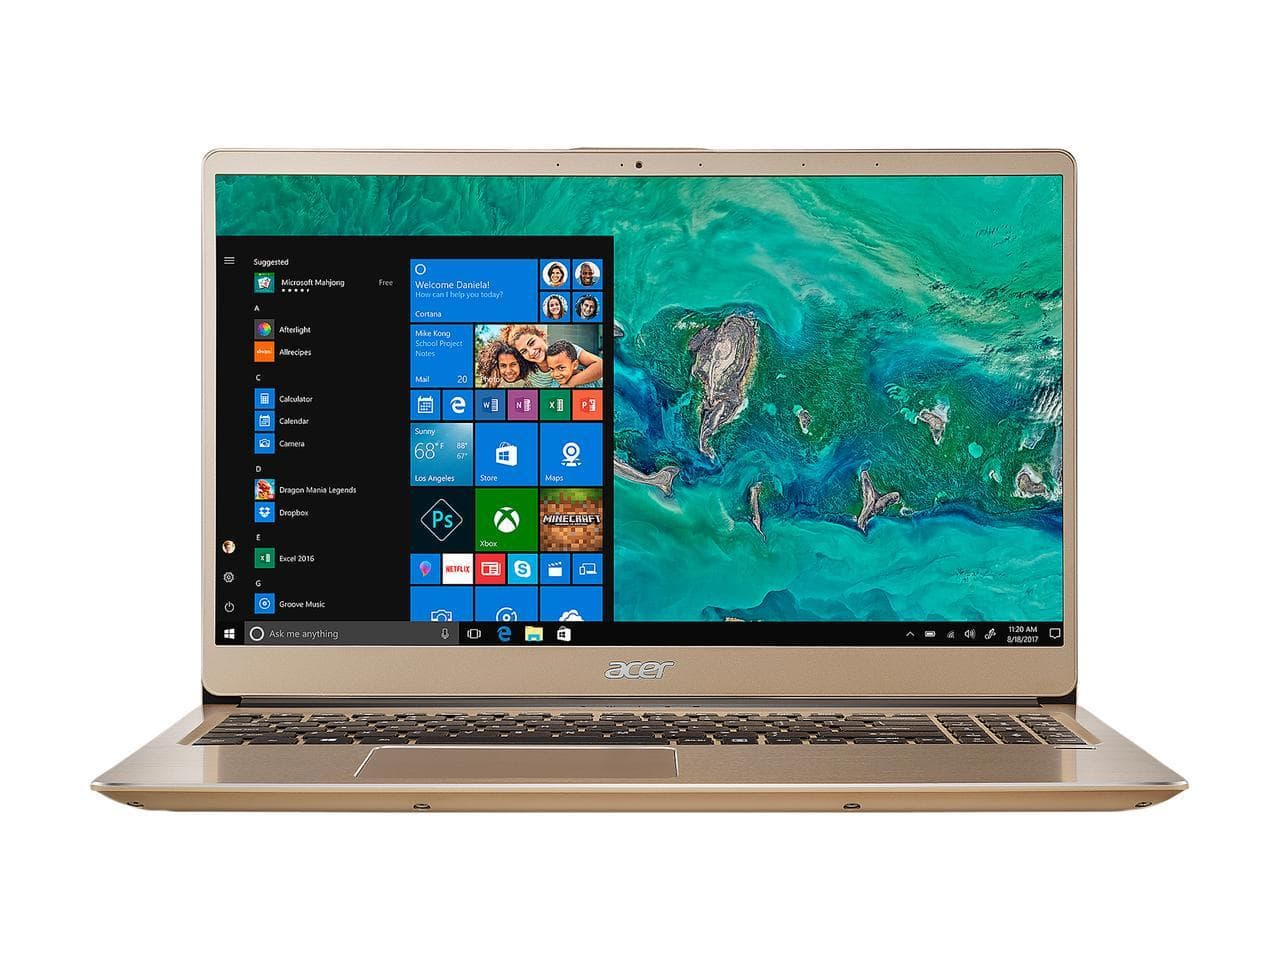 "Acer Swift 3 Laptop: i7 8550U, 15.6"" 1080p, 8GB RAM, 256GB SSD, Intel UHD 620, Win 10 + $30 Newegg Promo Gift Card $529.99 + Free Shipping via Newegg"